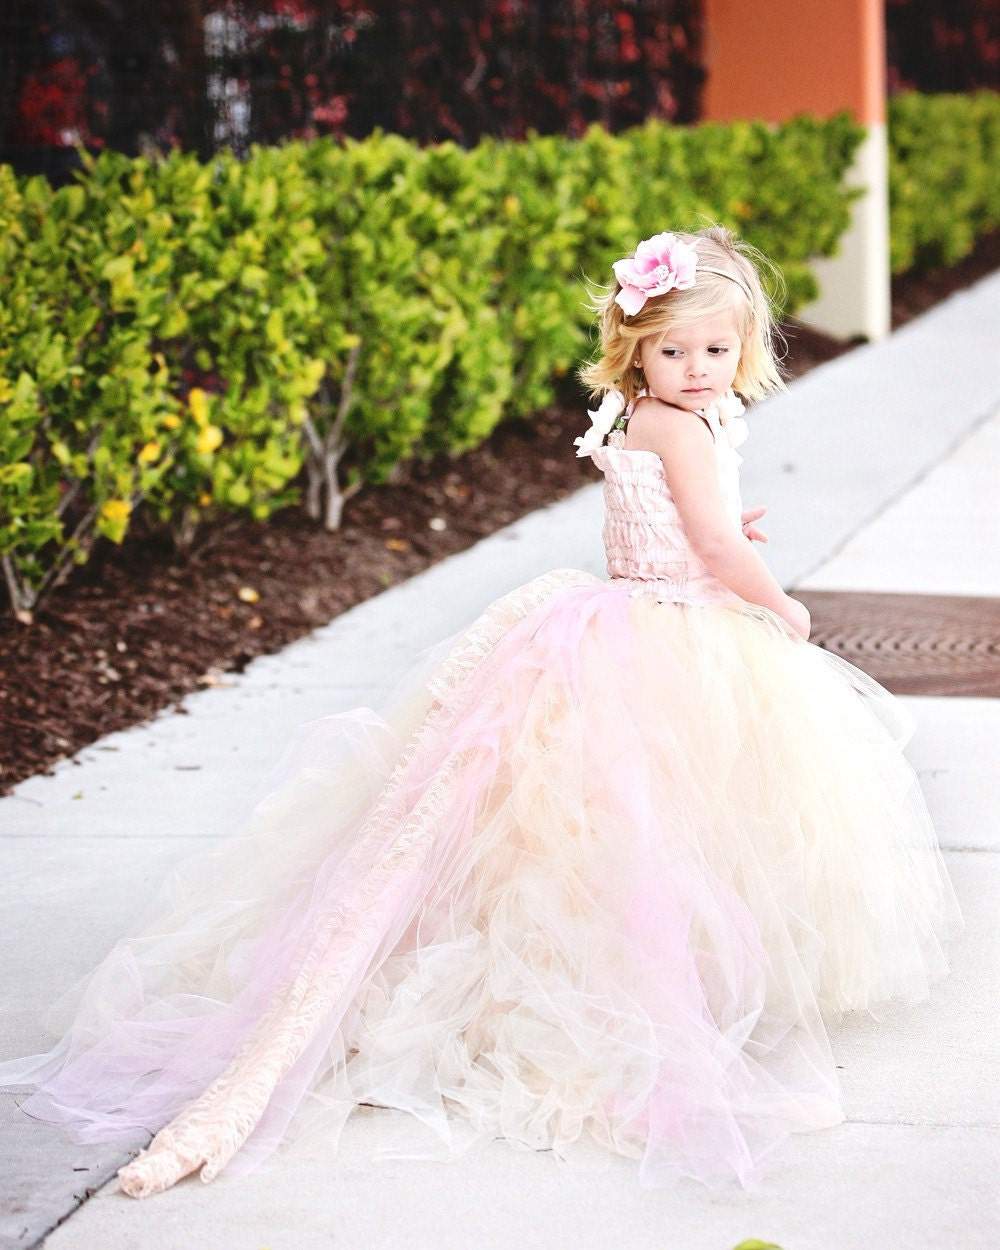 Wedding Flower Girl: Blush Flower Girl DressPink Lace DressGreat By